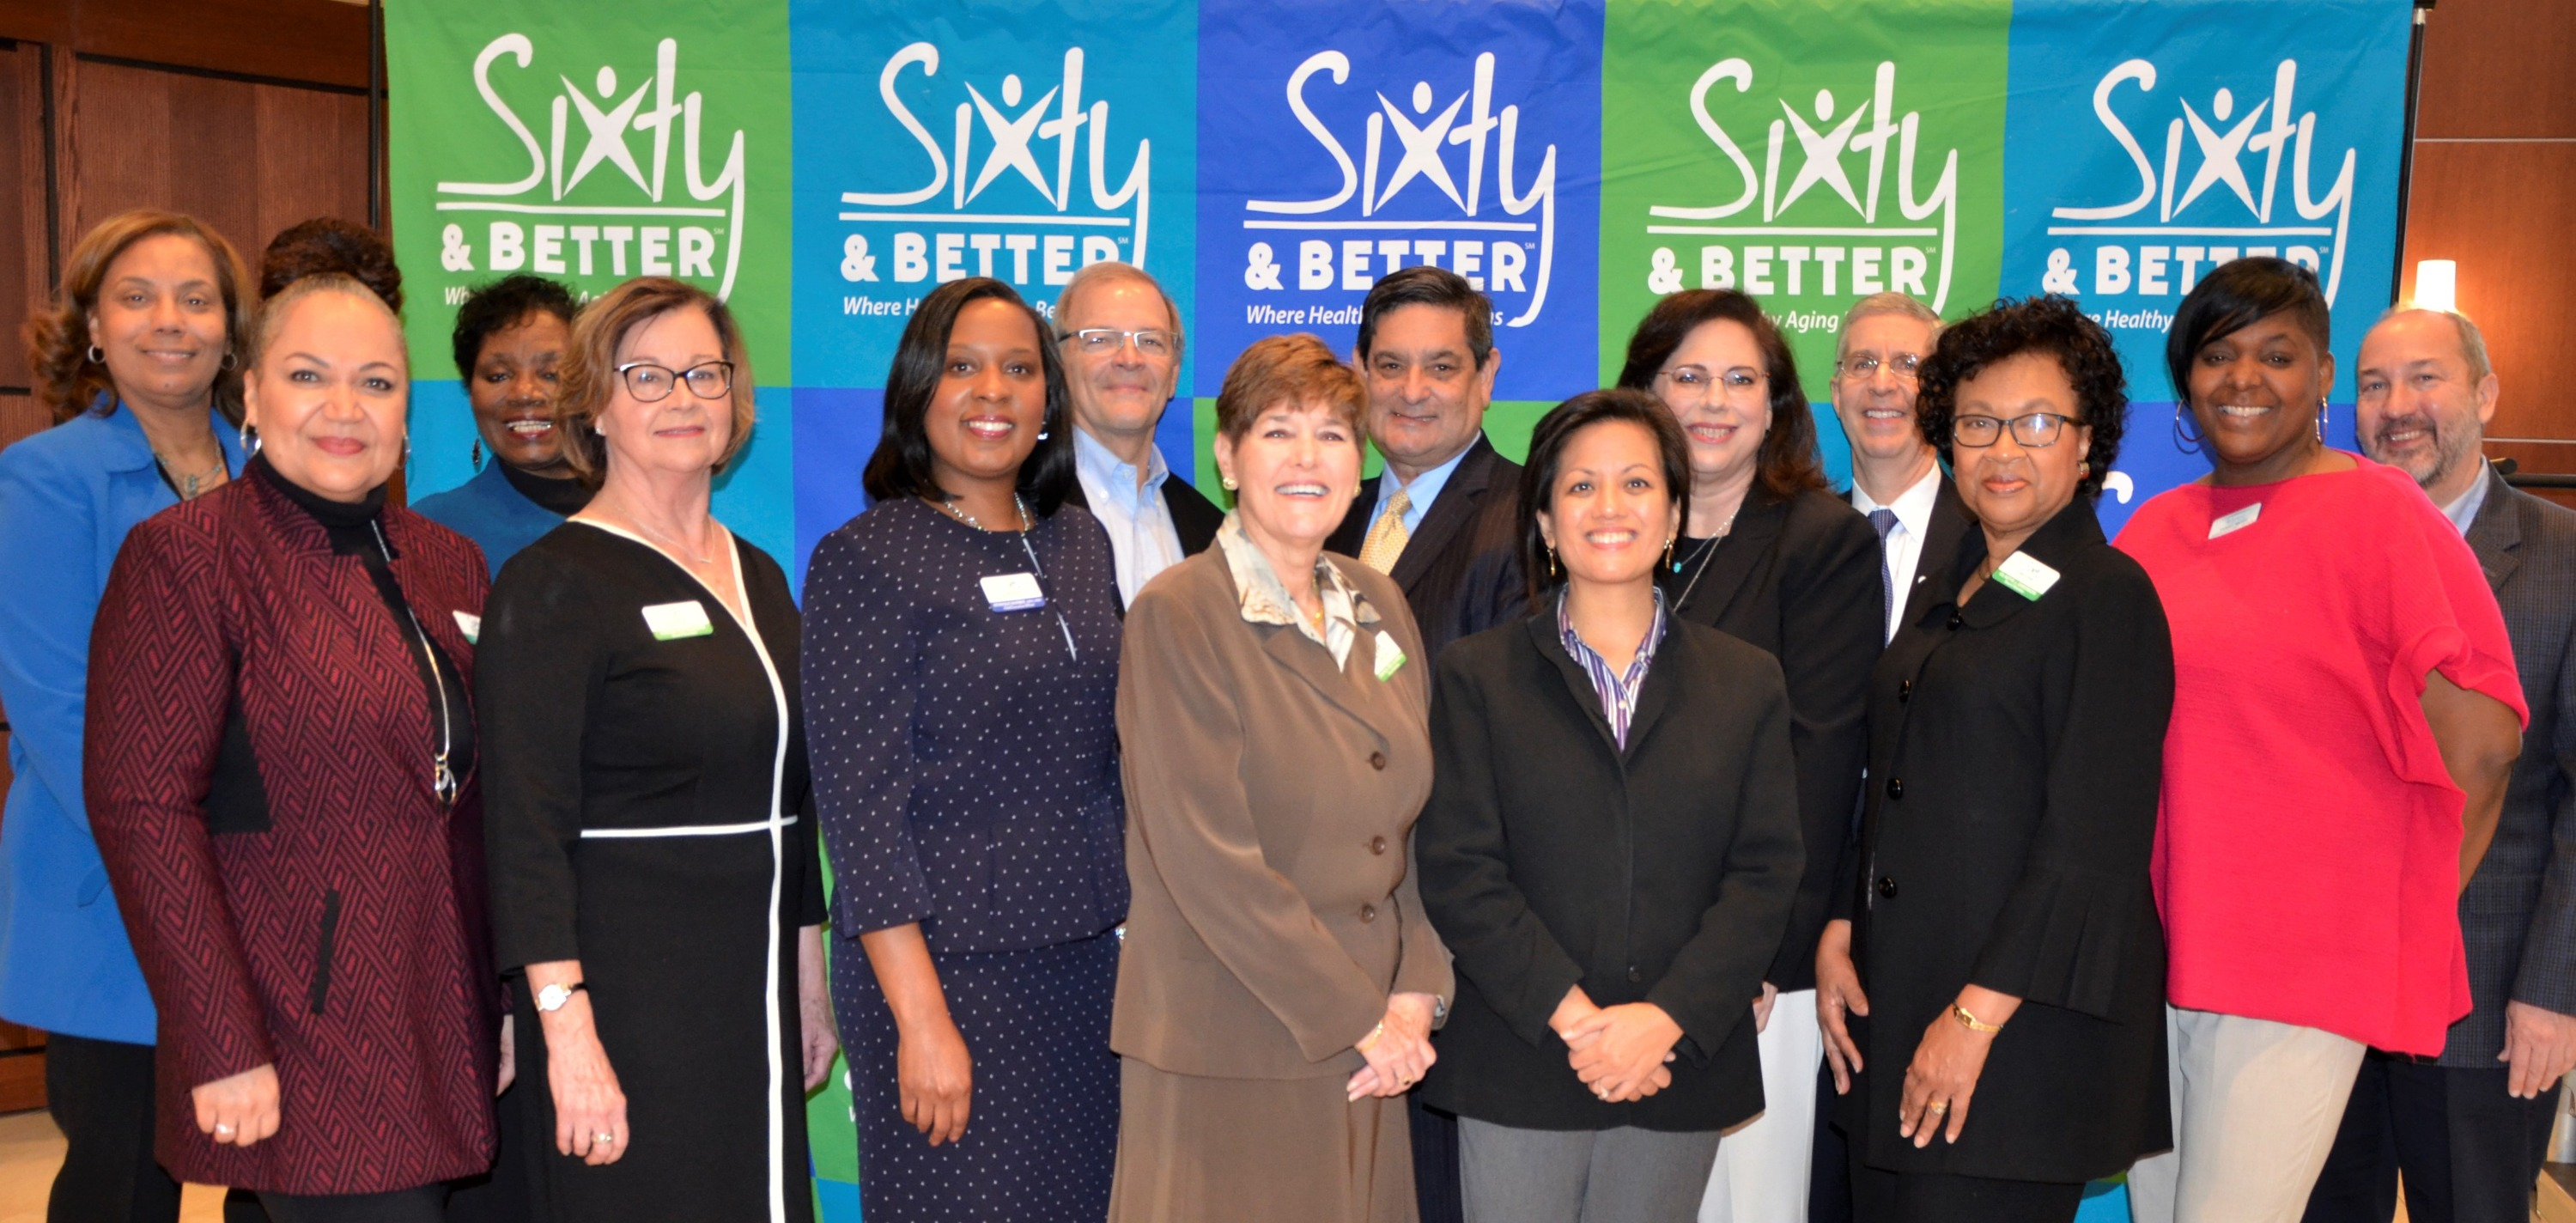 Sixty and Better Board of Directors